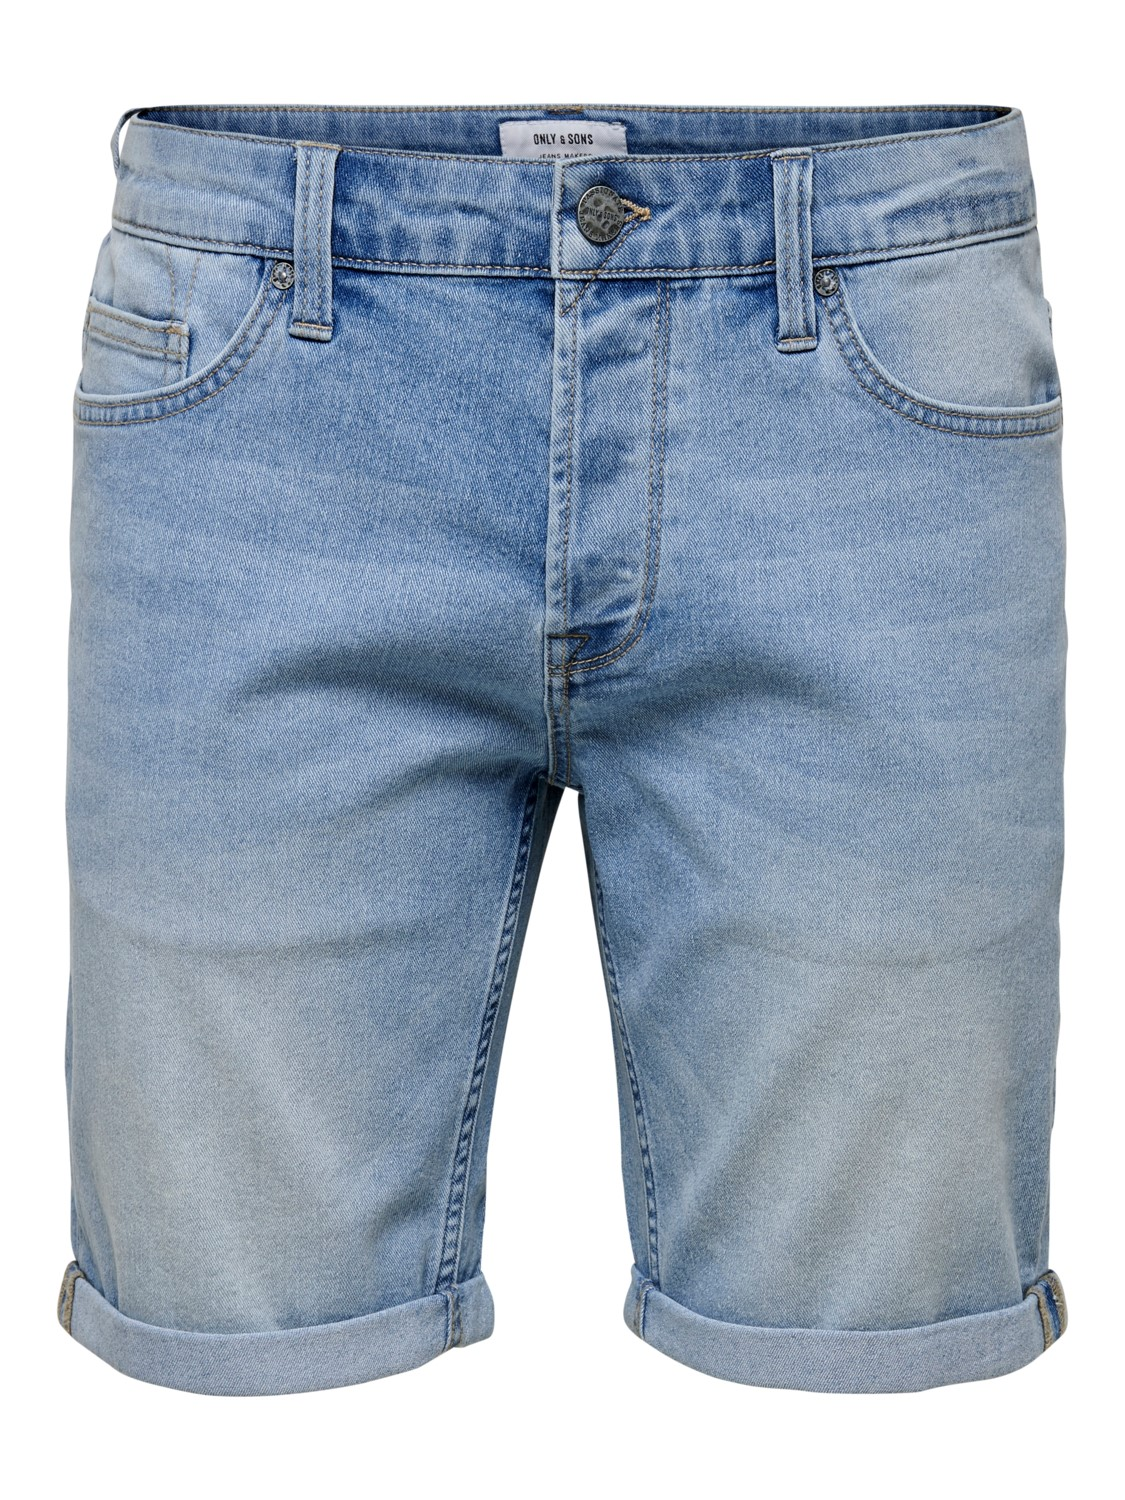 Only & Sons - blue denim shorts | Gate36 Hobro